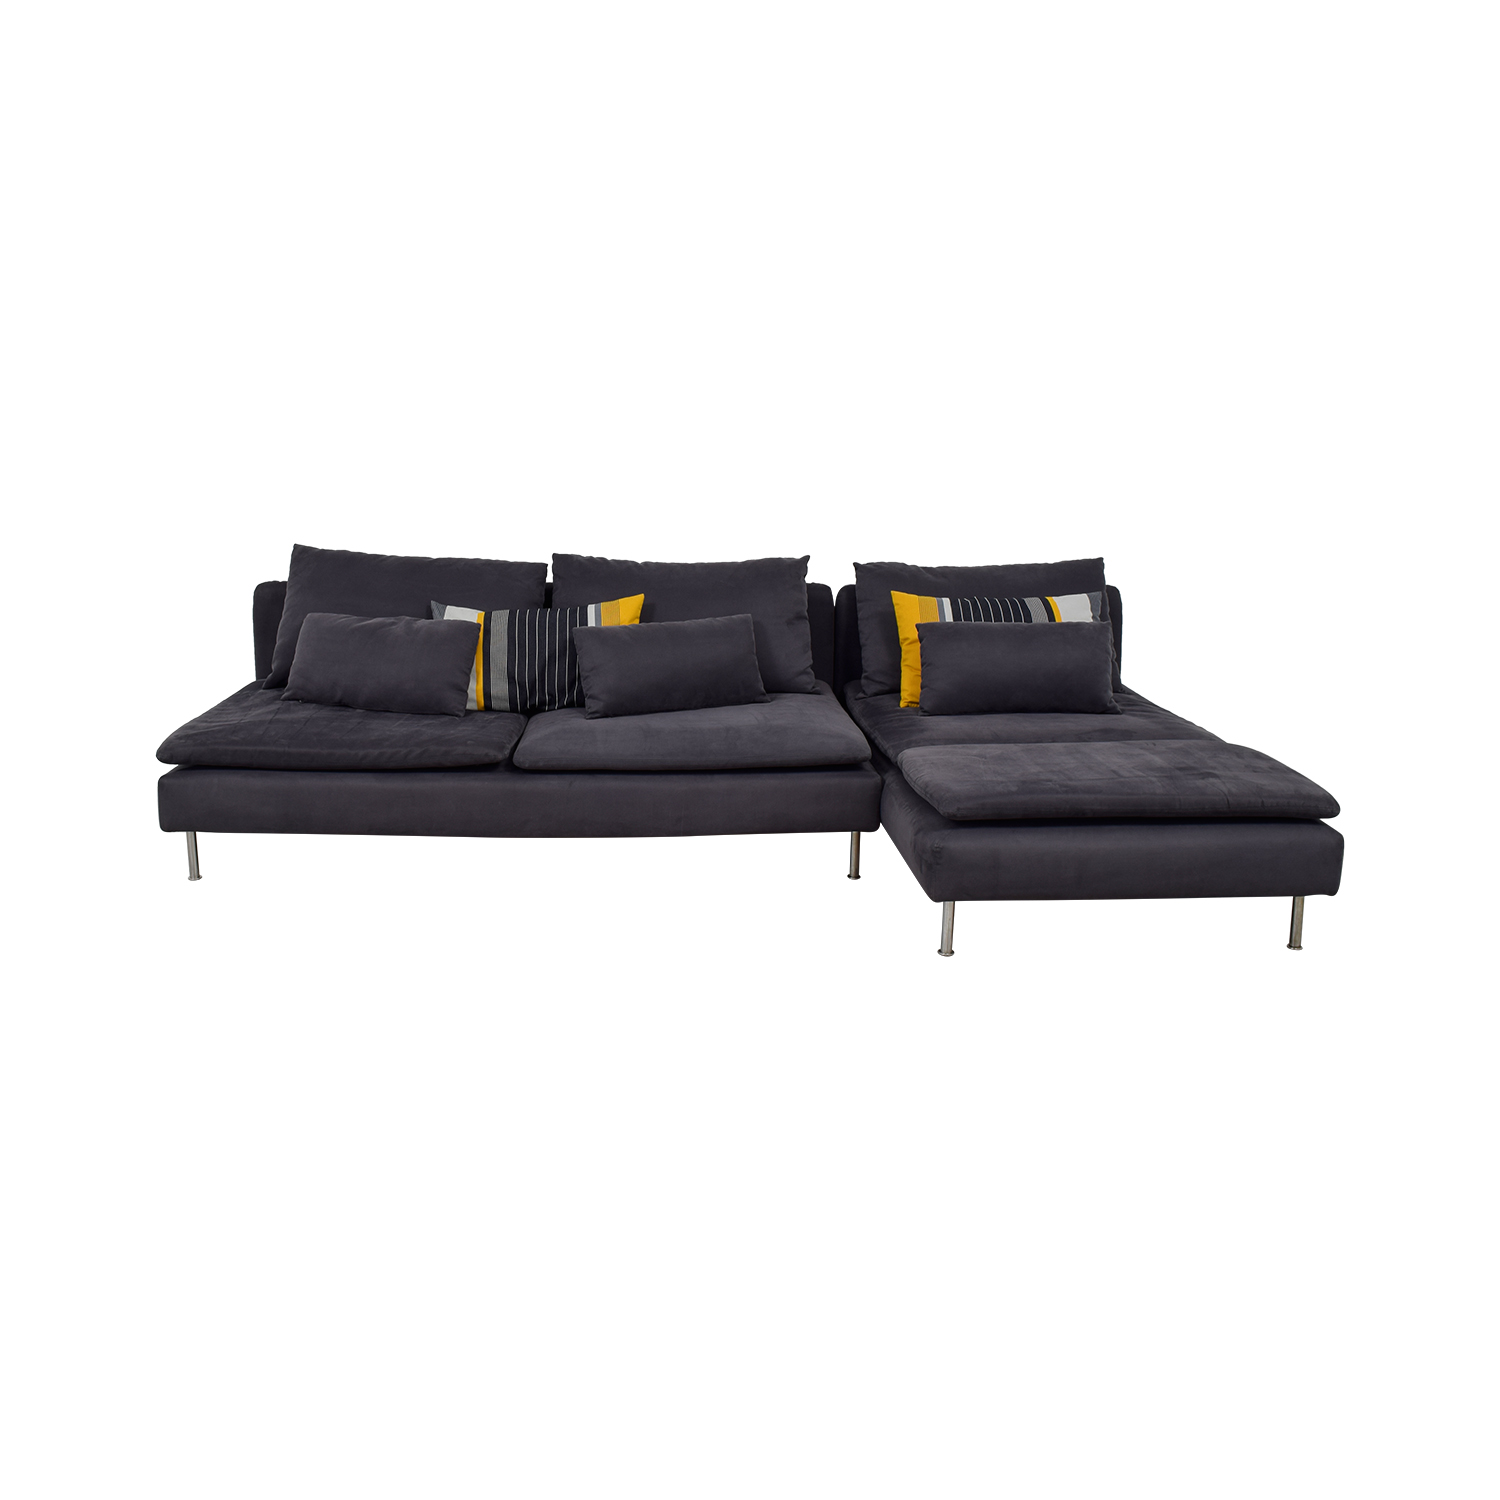 IKEA Soderhamn Sectional with Chaise / Sectionals